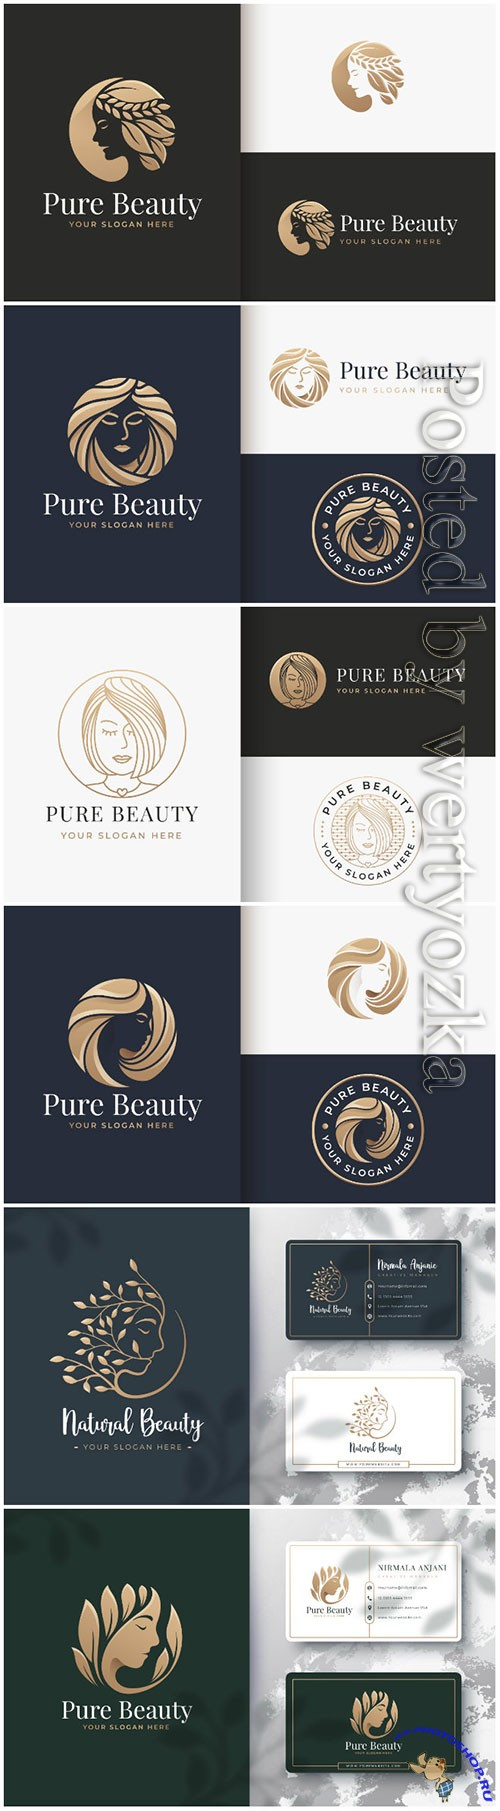 Beauty logo and business card design premium vector